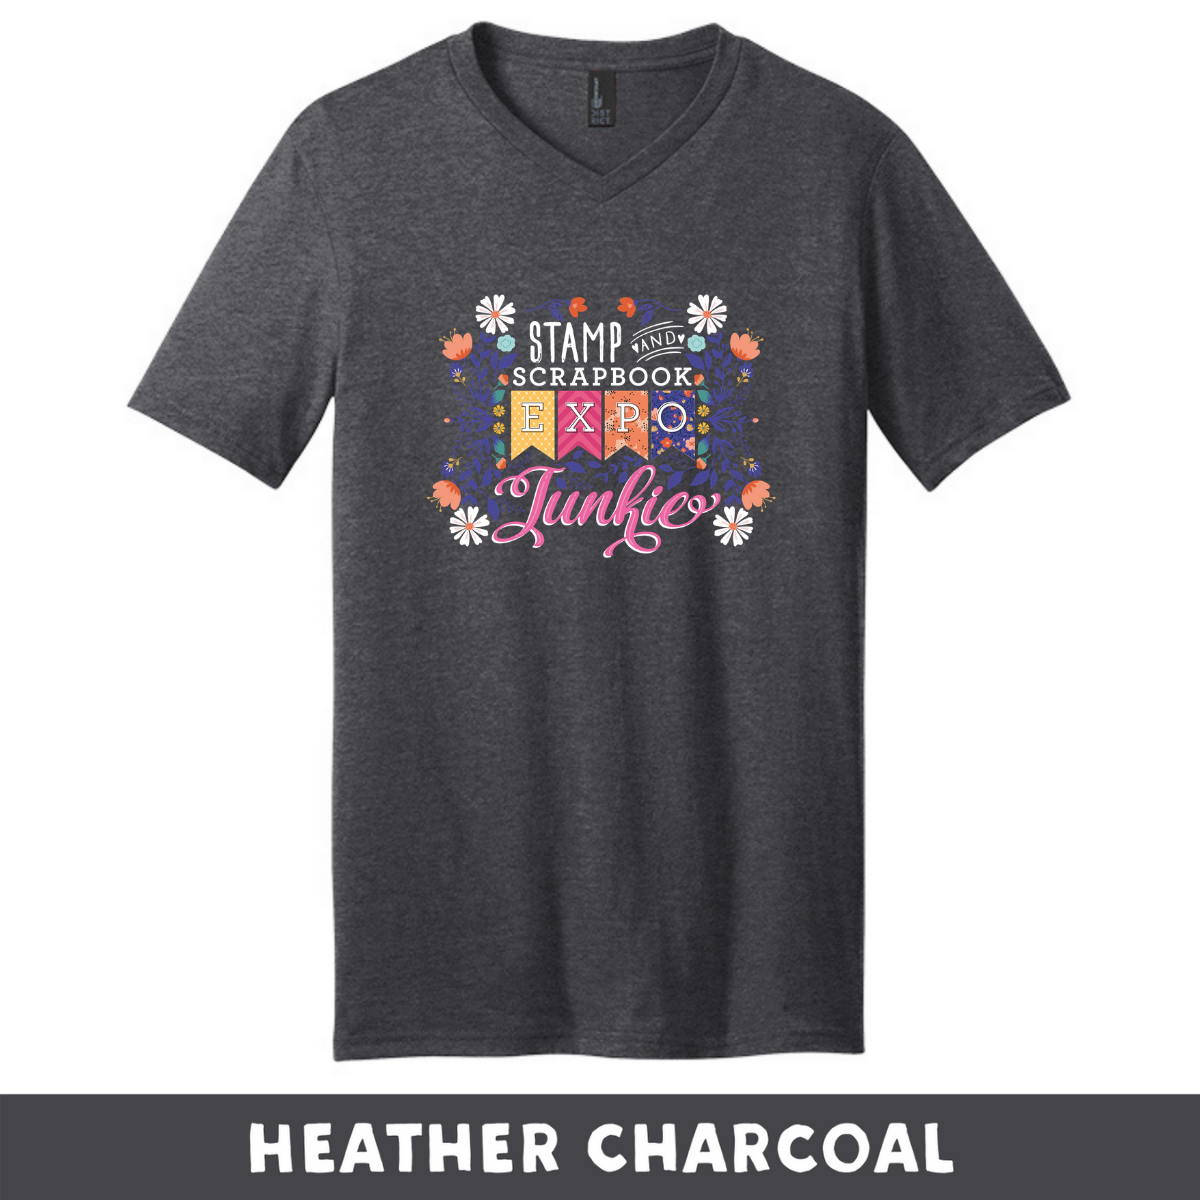 Heather Charcoal - Extra Soft Unisex V-Neck - SSBE Junkie With/Flower